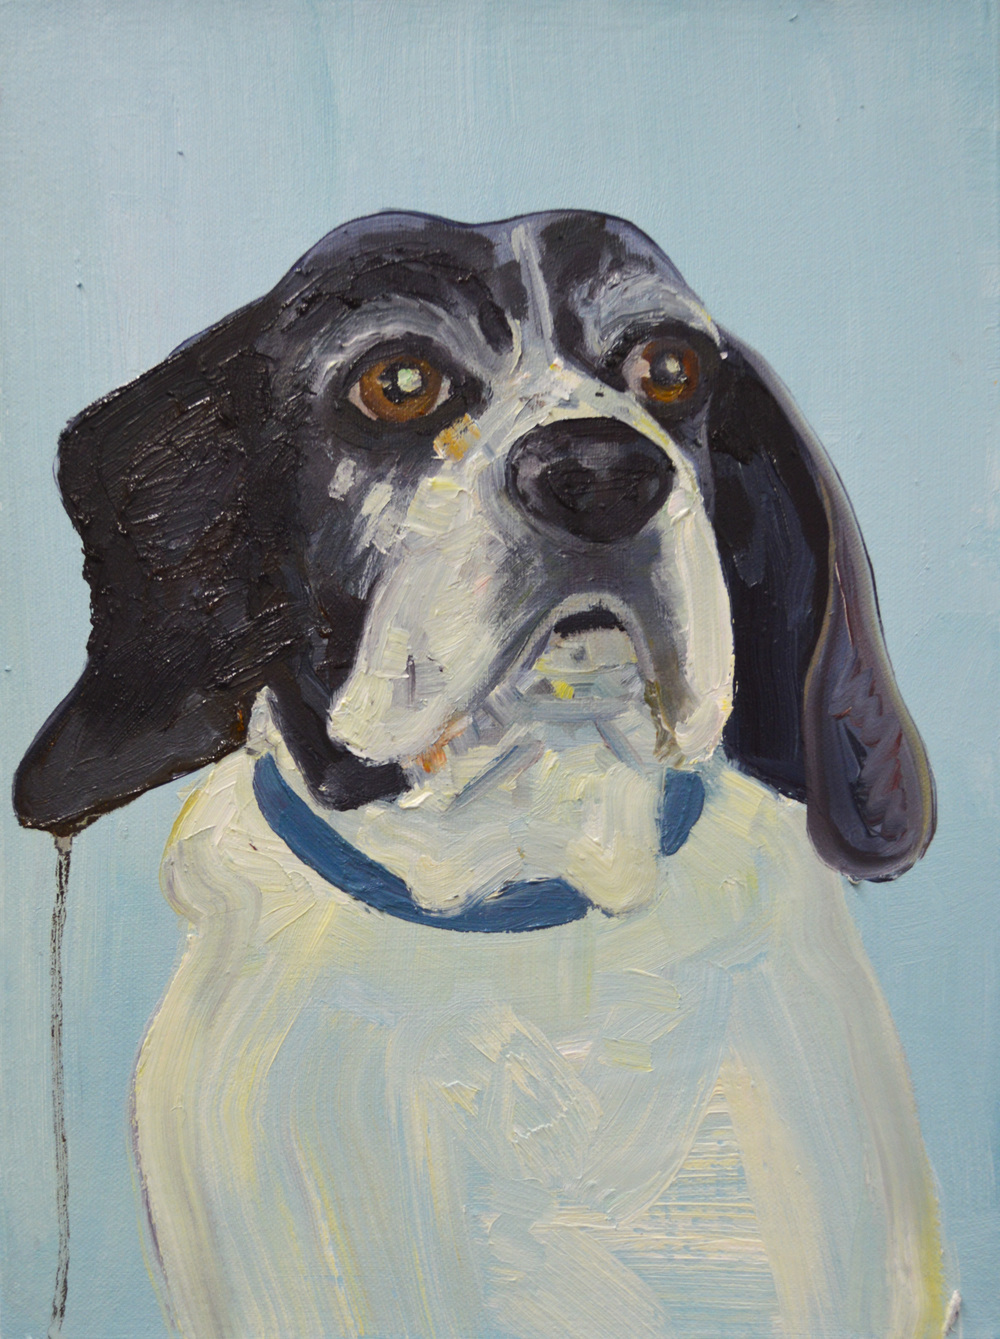 Eddie Forever , oil on canvas, 2014